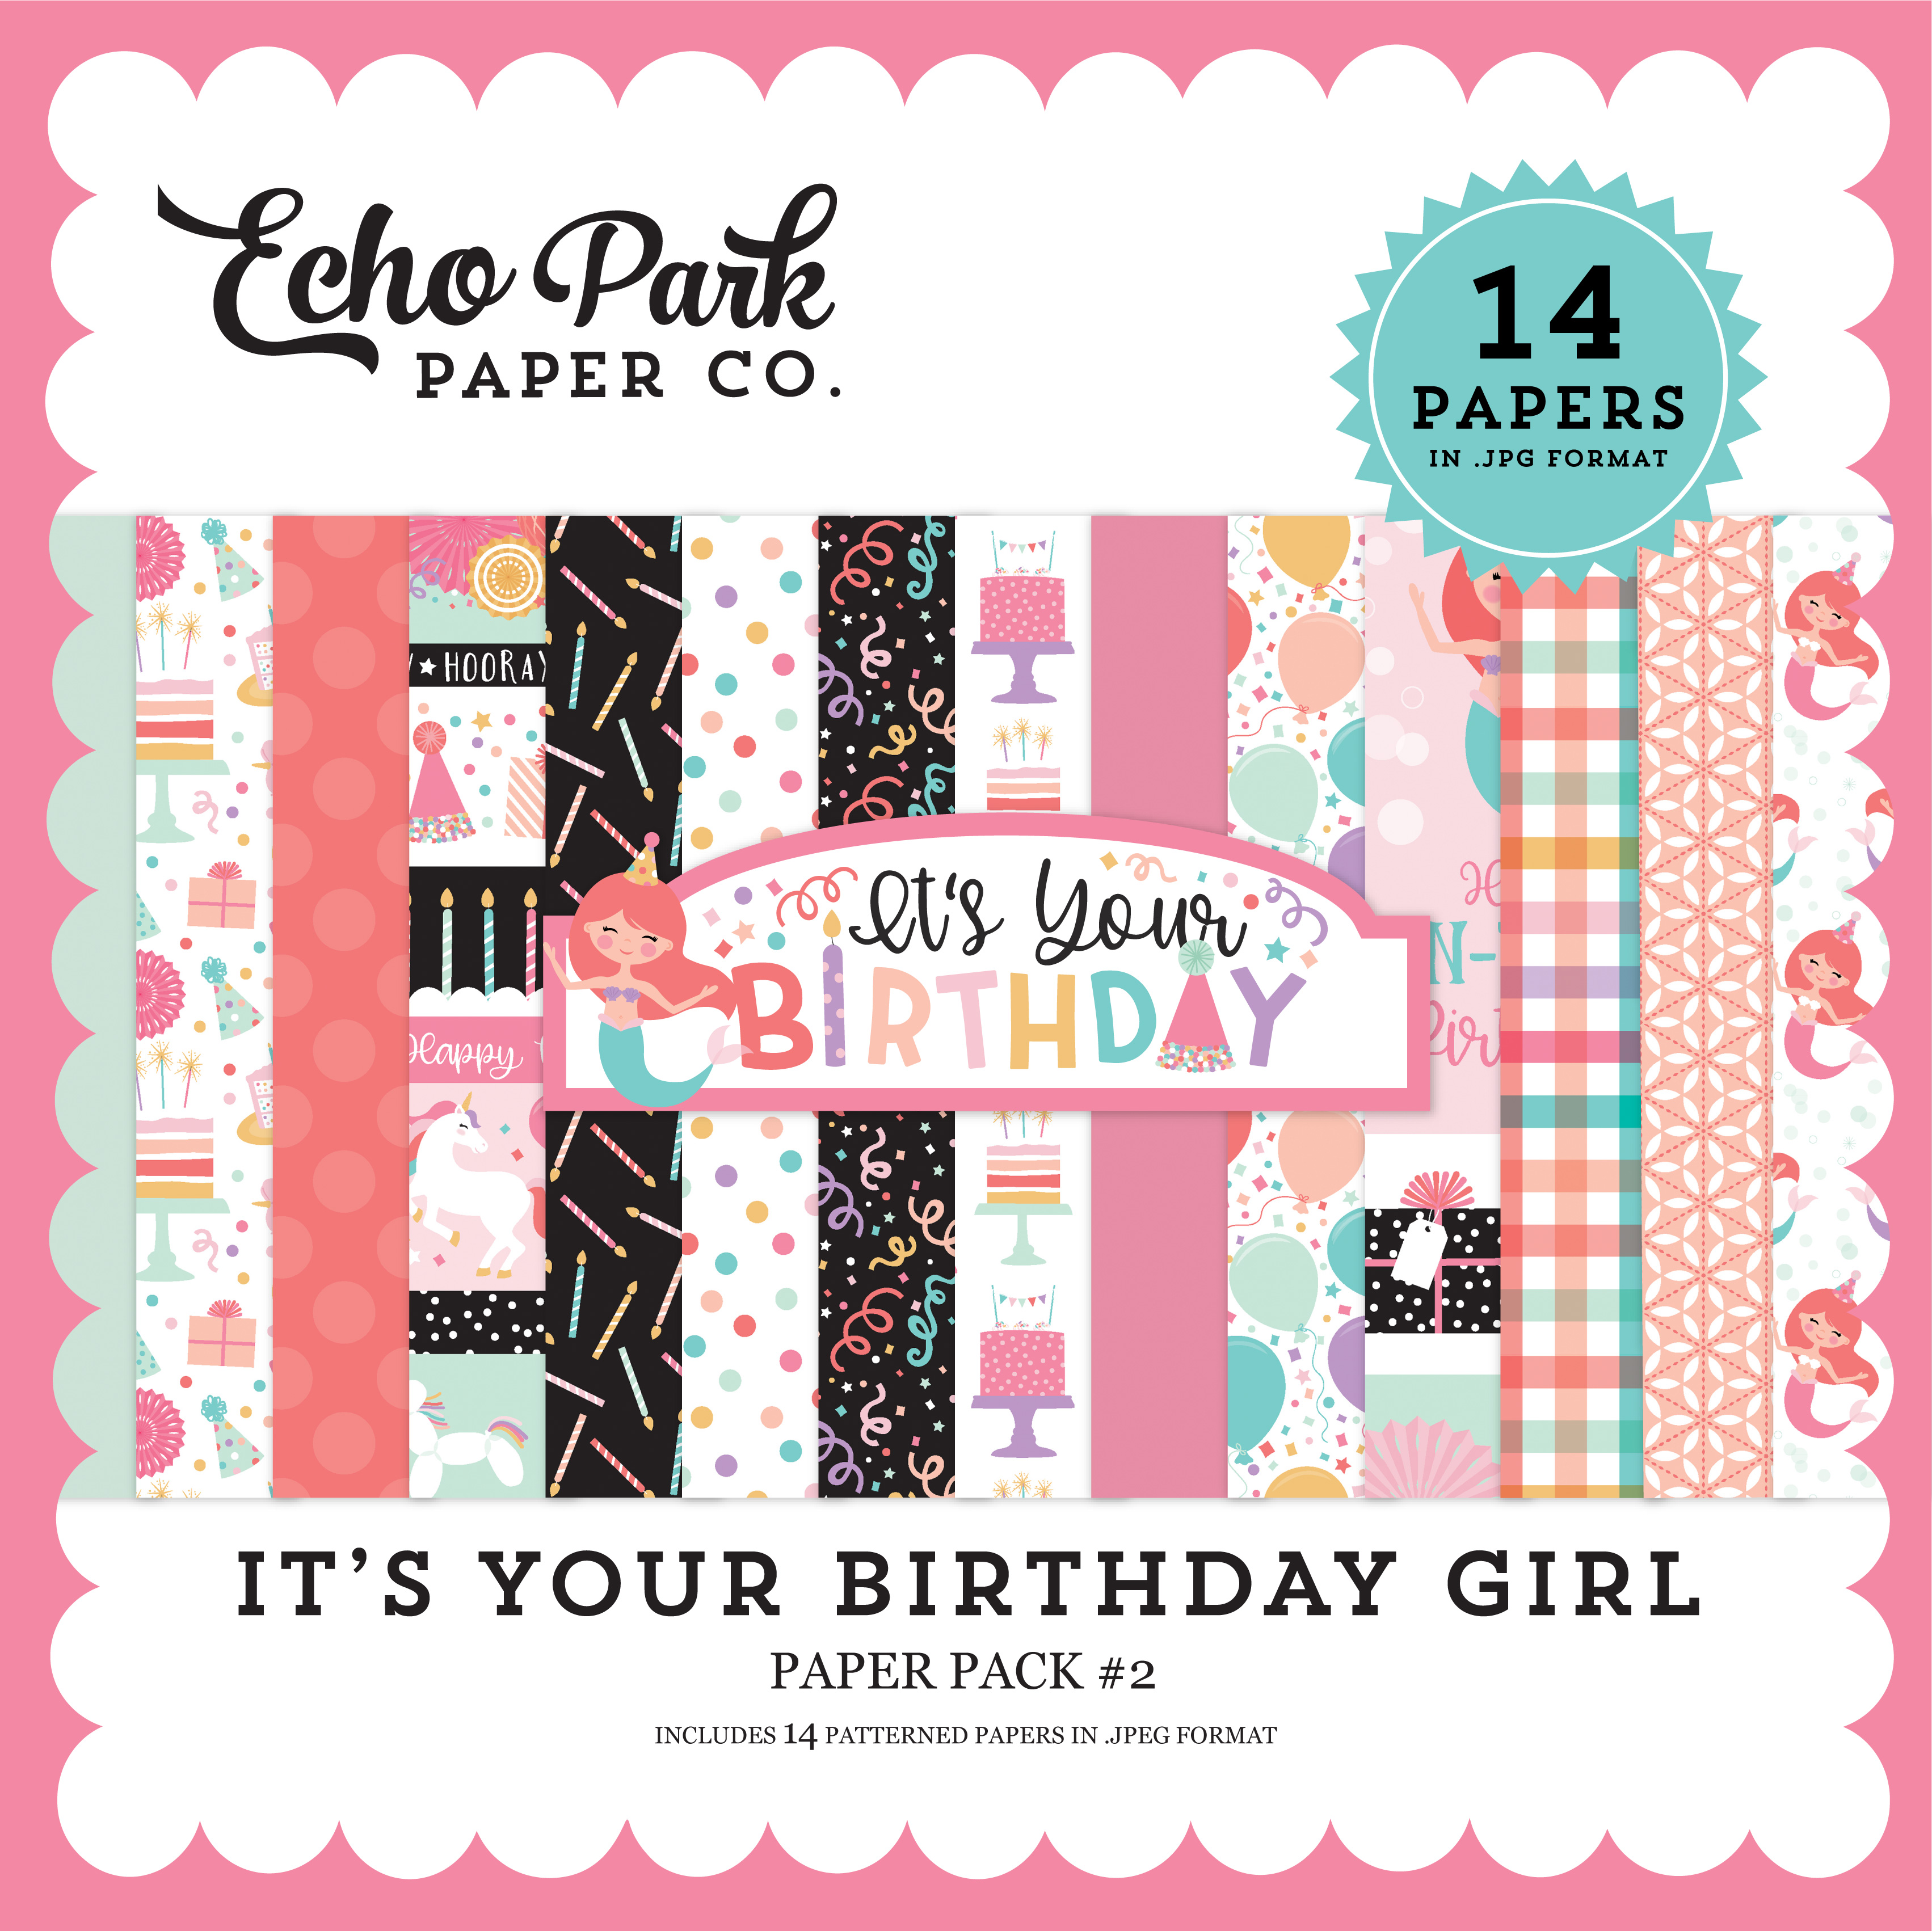 It's Your Birthday Girl Paper Pack #2